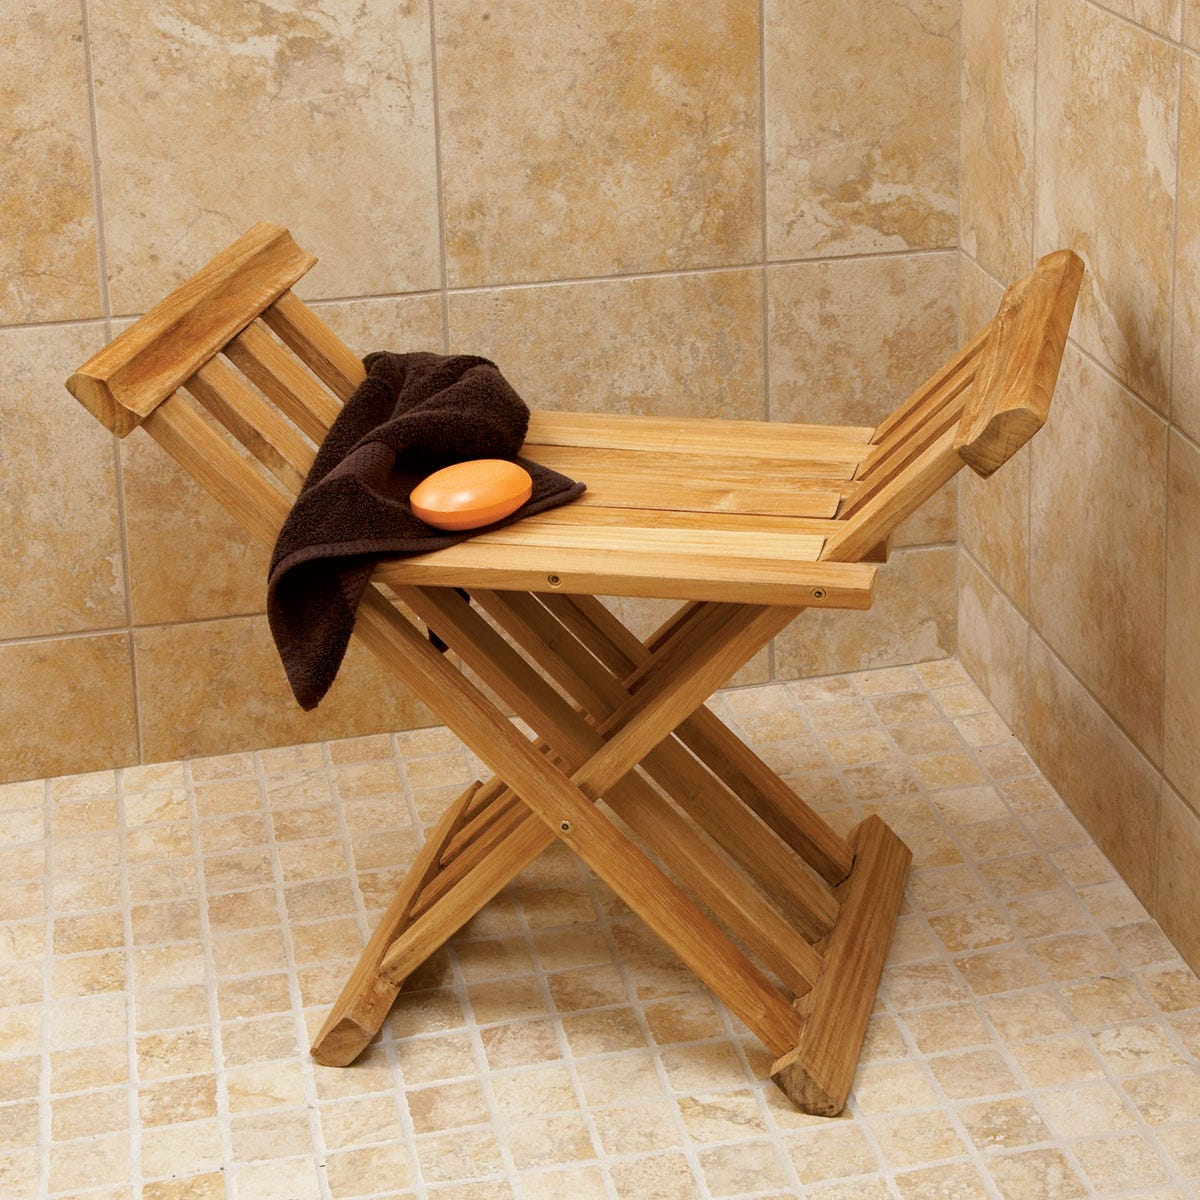 Deluxe Teak Bath Stool From Sportys Preferred Living